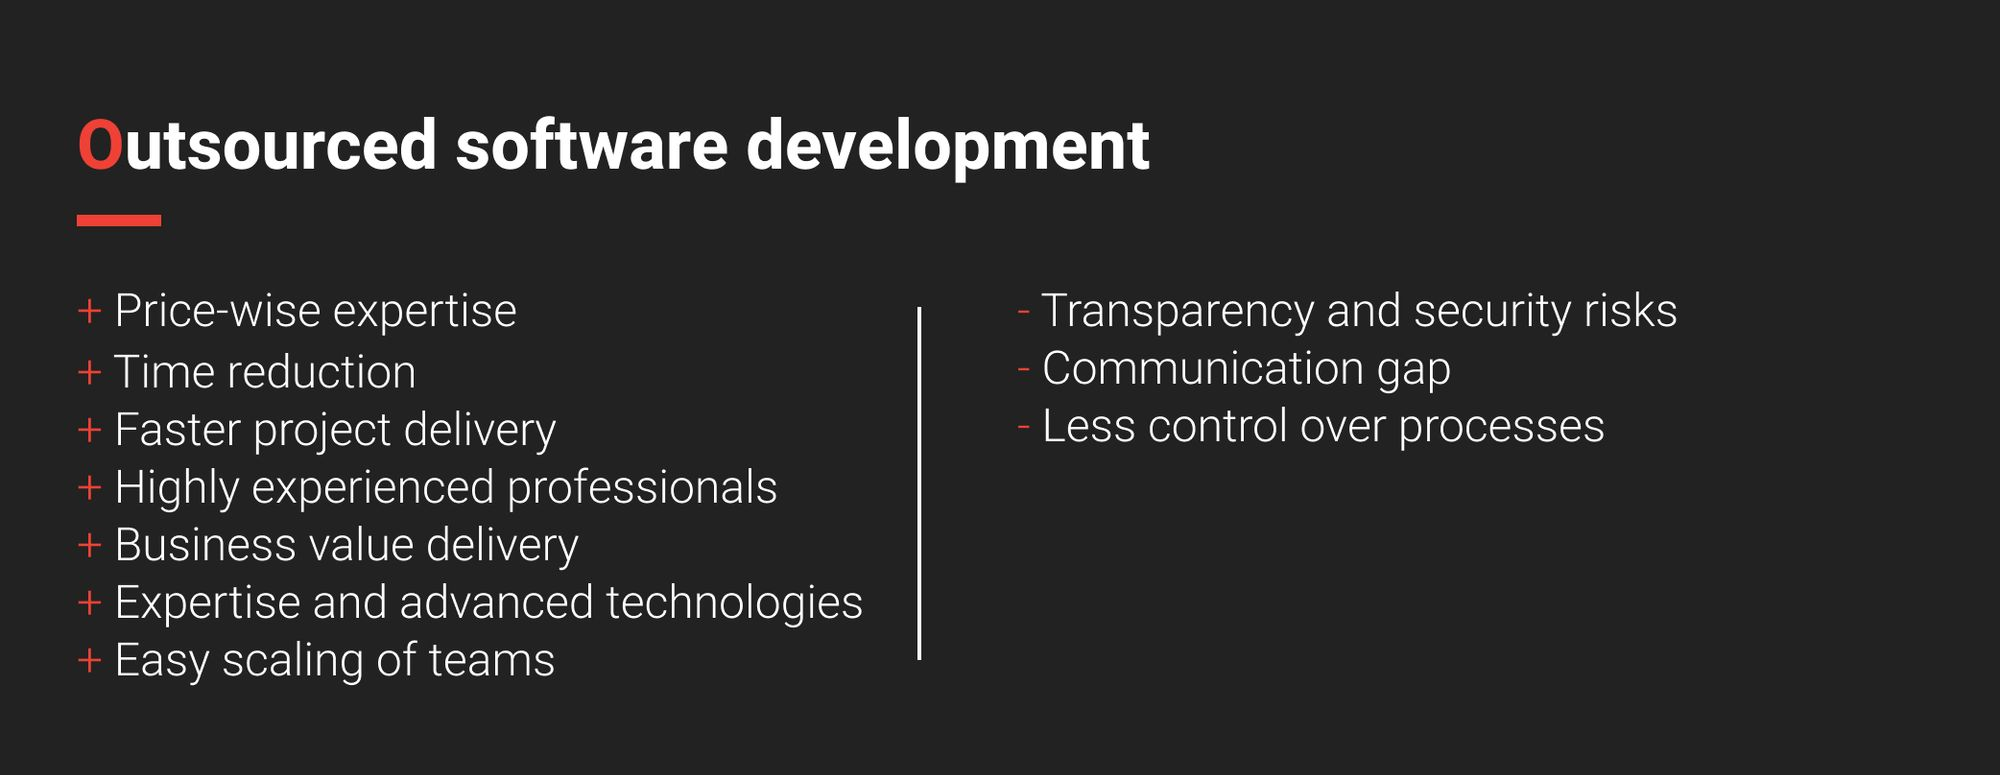 Pros and cons of outsourced software development